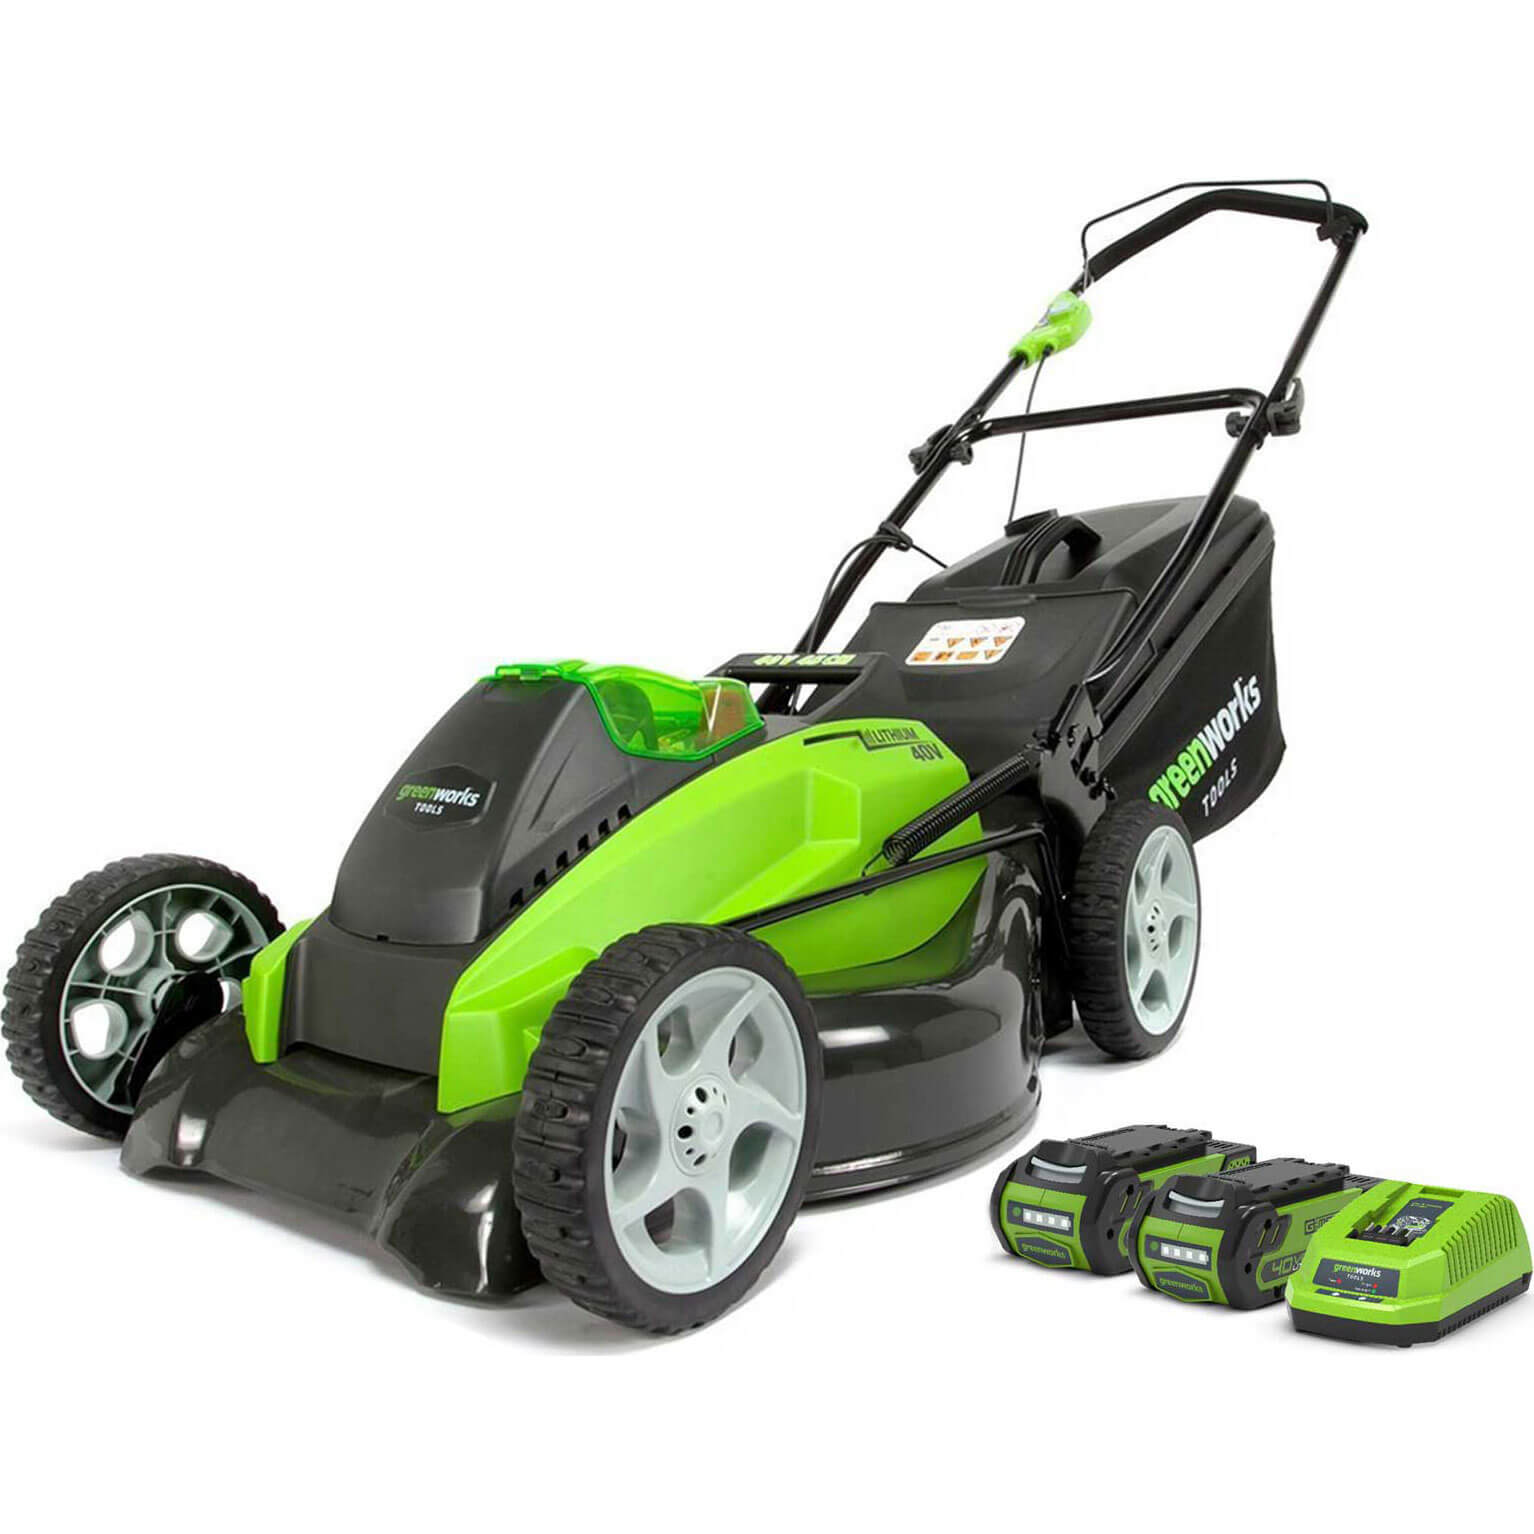 Greenworks G40LM45 40v Cordless Rotary Lawnmower 450mm 2 x 2.5ah Li-ion Charger